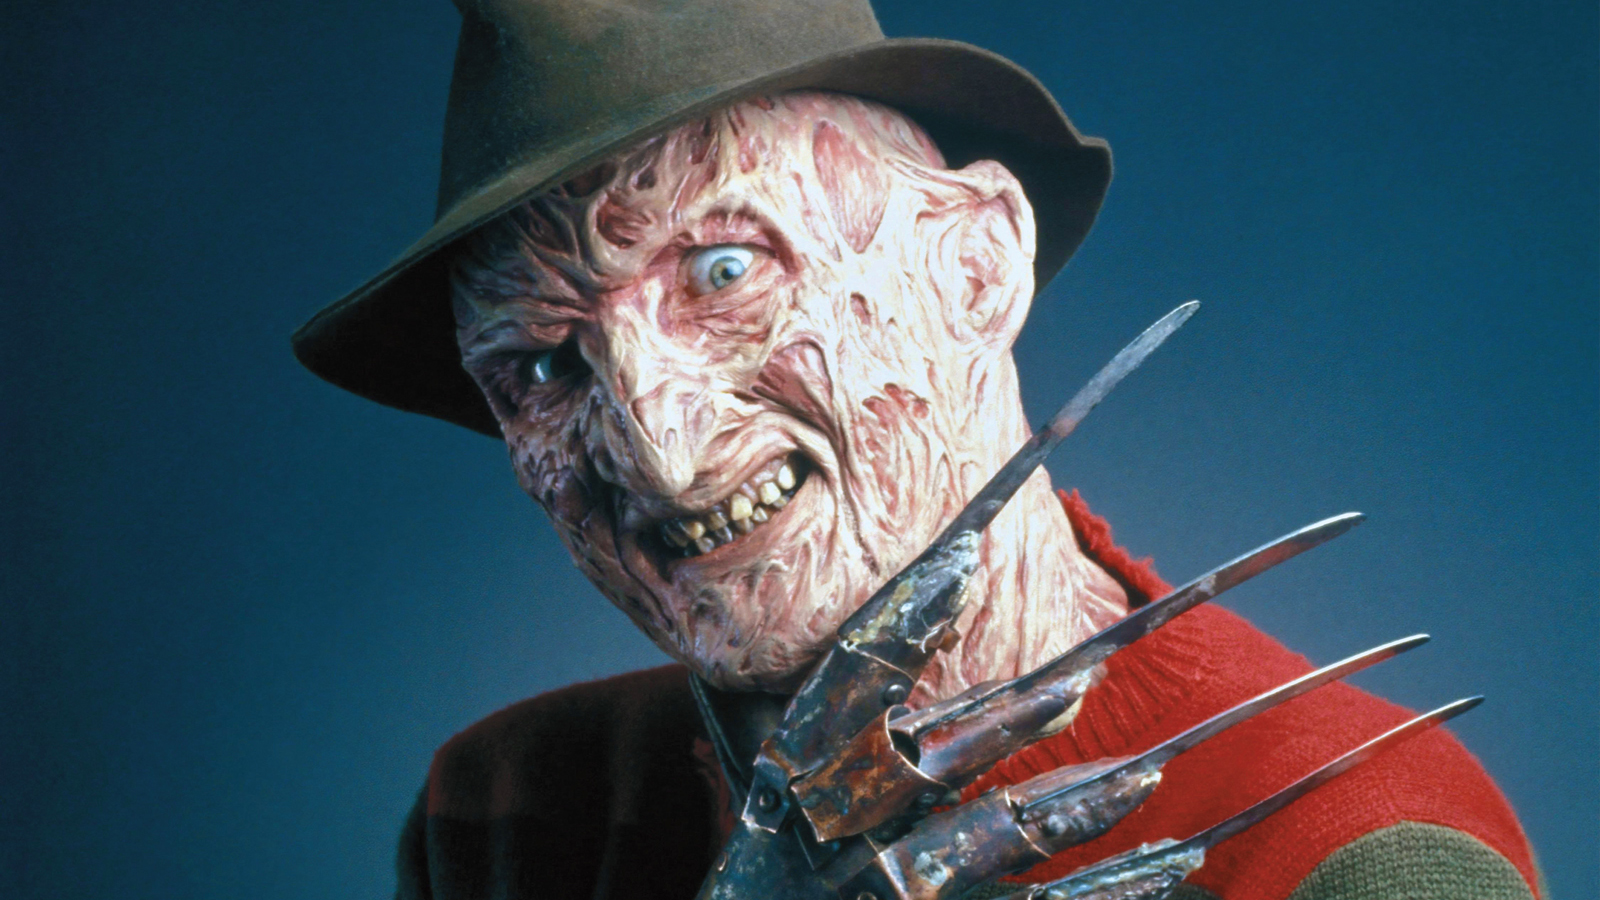 [News] Indiegogo Campaign Launched for ROBERT ENGLUND Hollywood Star